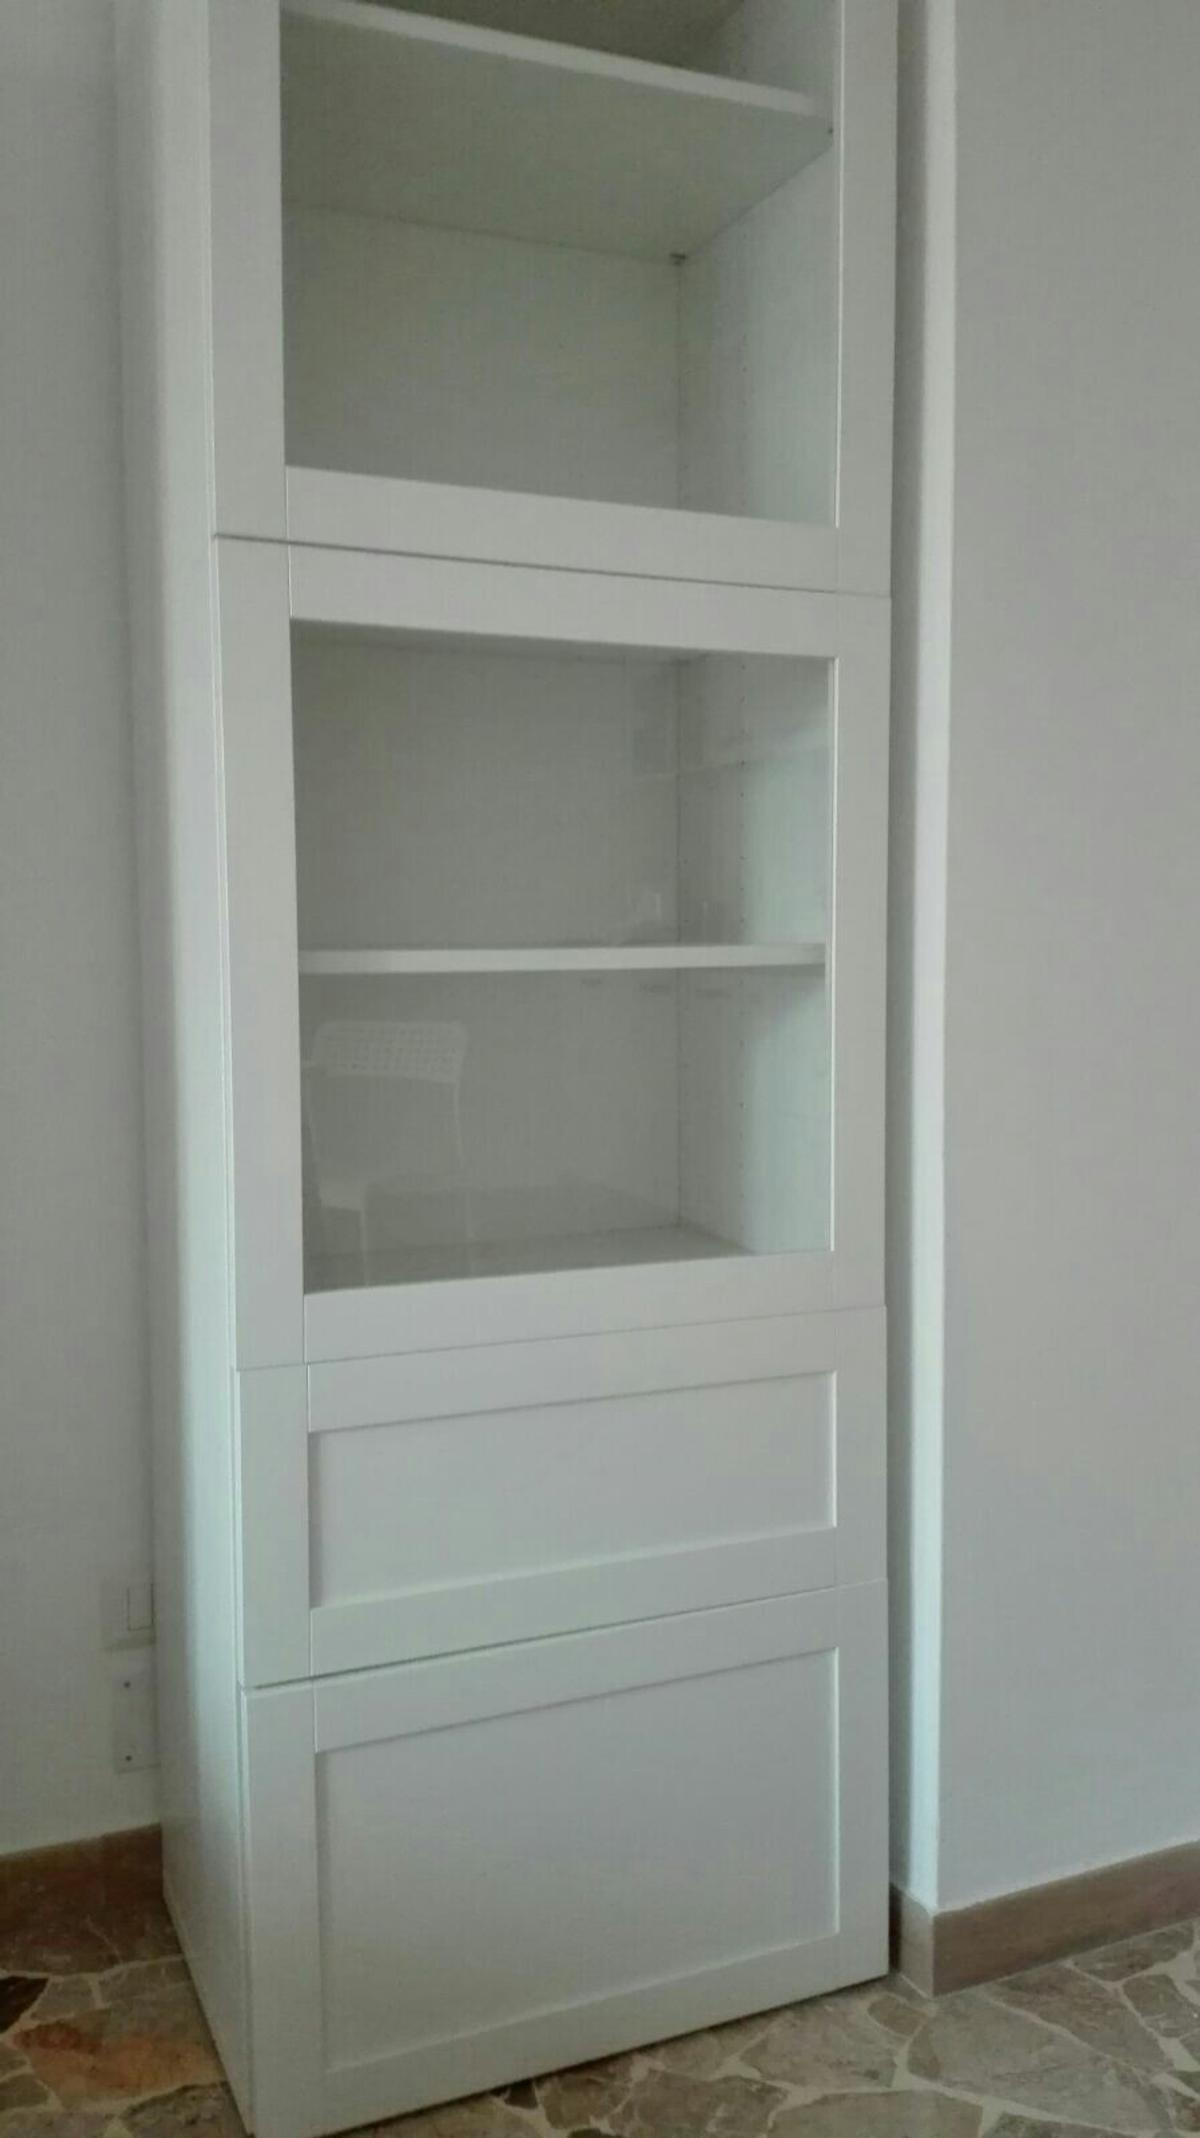 Mobile Cucina Ikea In 20122 Milano For 50 00 For Sale Shpock